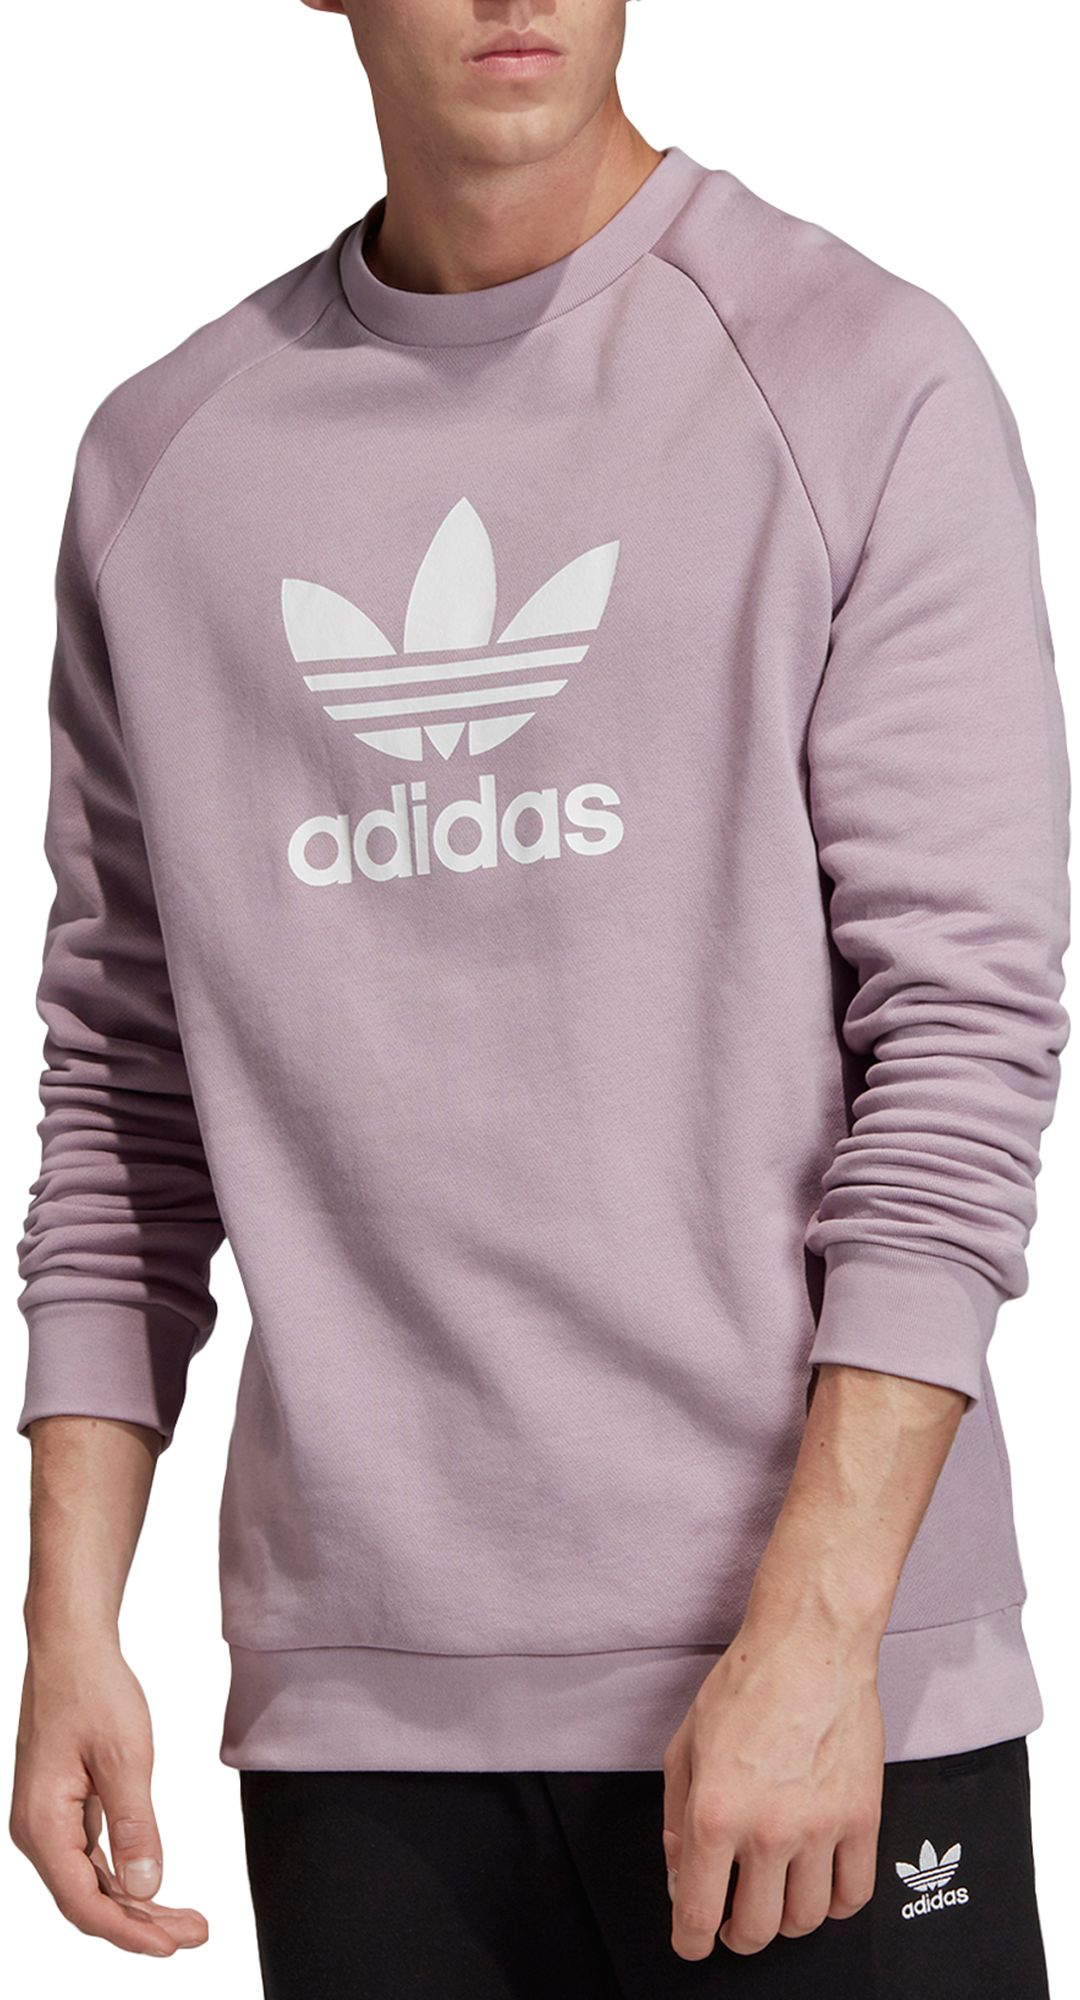 adidas Originals Men's Trefoil Crewneck Sweatshirt